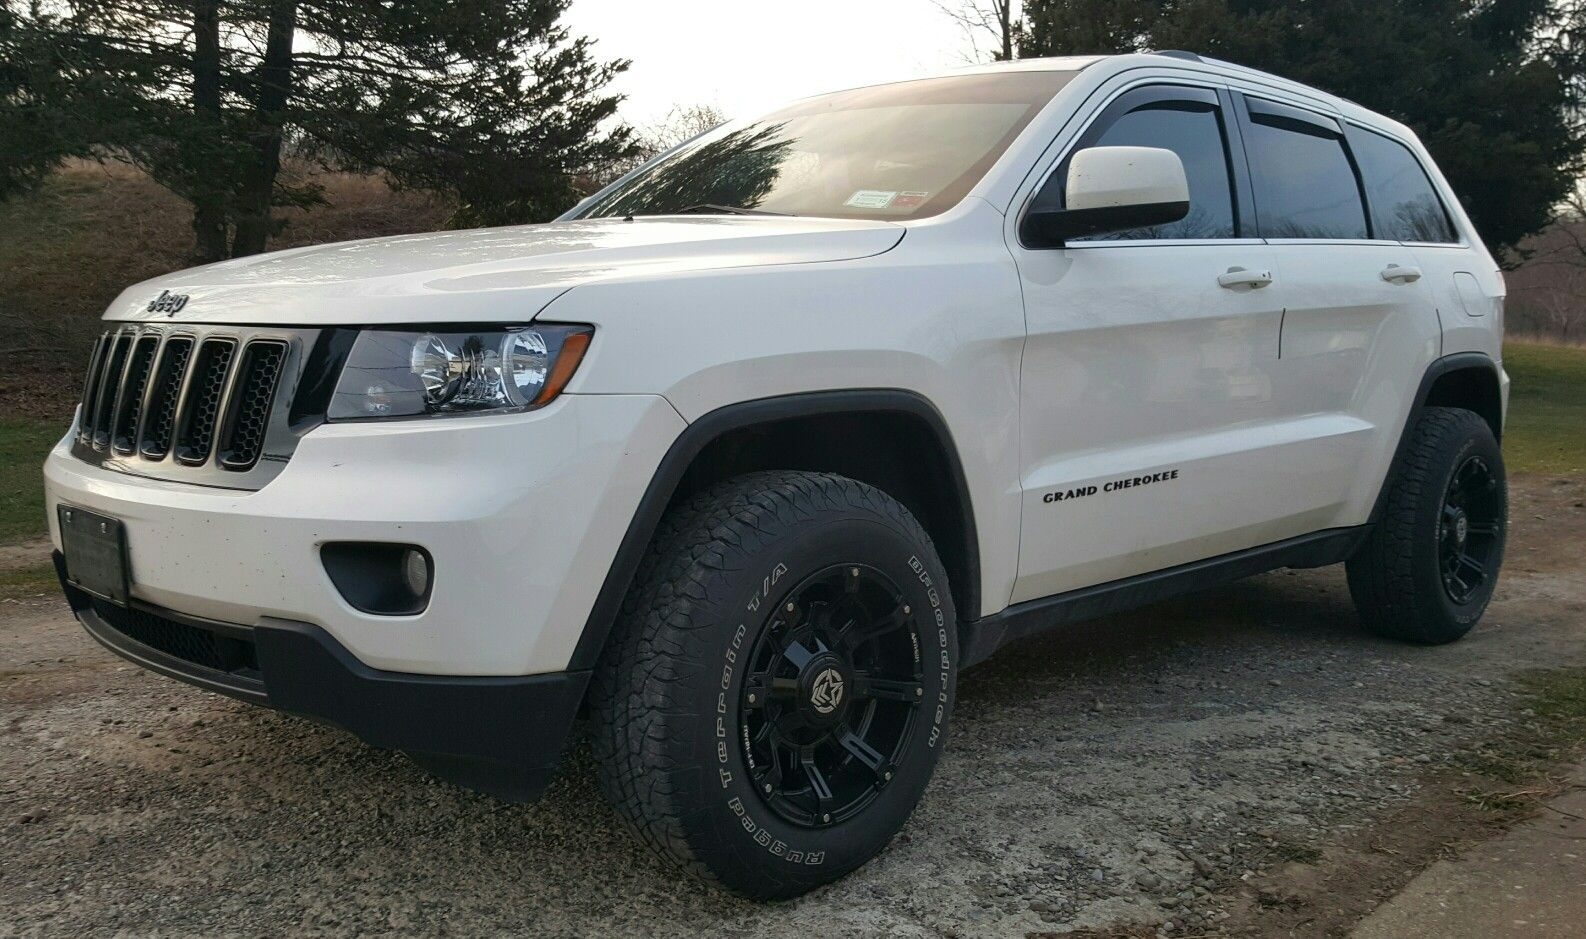 My 2012 Jeep Grand Cherokee Laredo Jeep Grand Cherokee Laredo